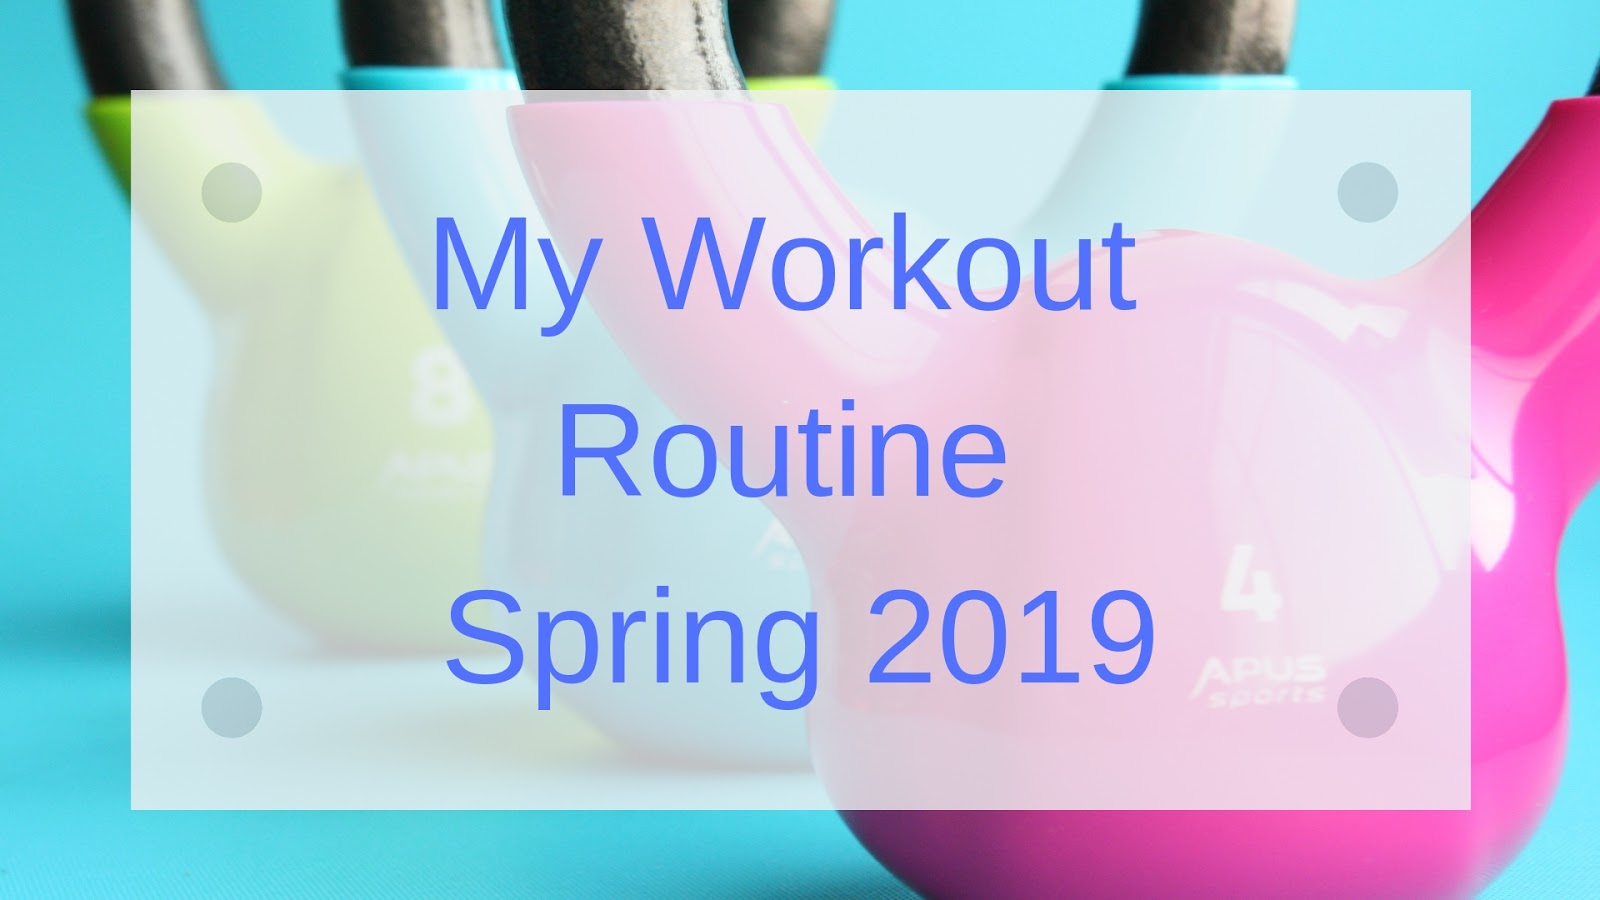 Stephanie Kamp Blog: My Workout Routine Spring 2019